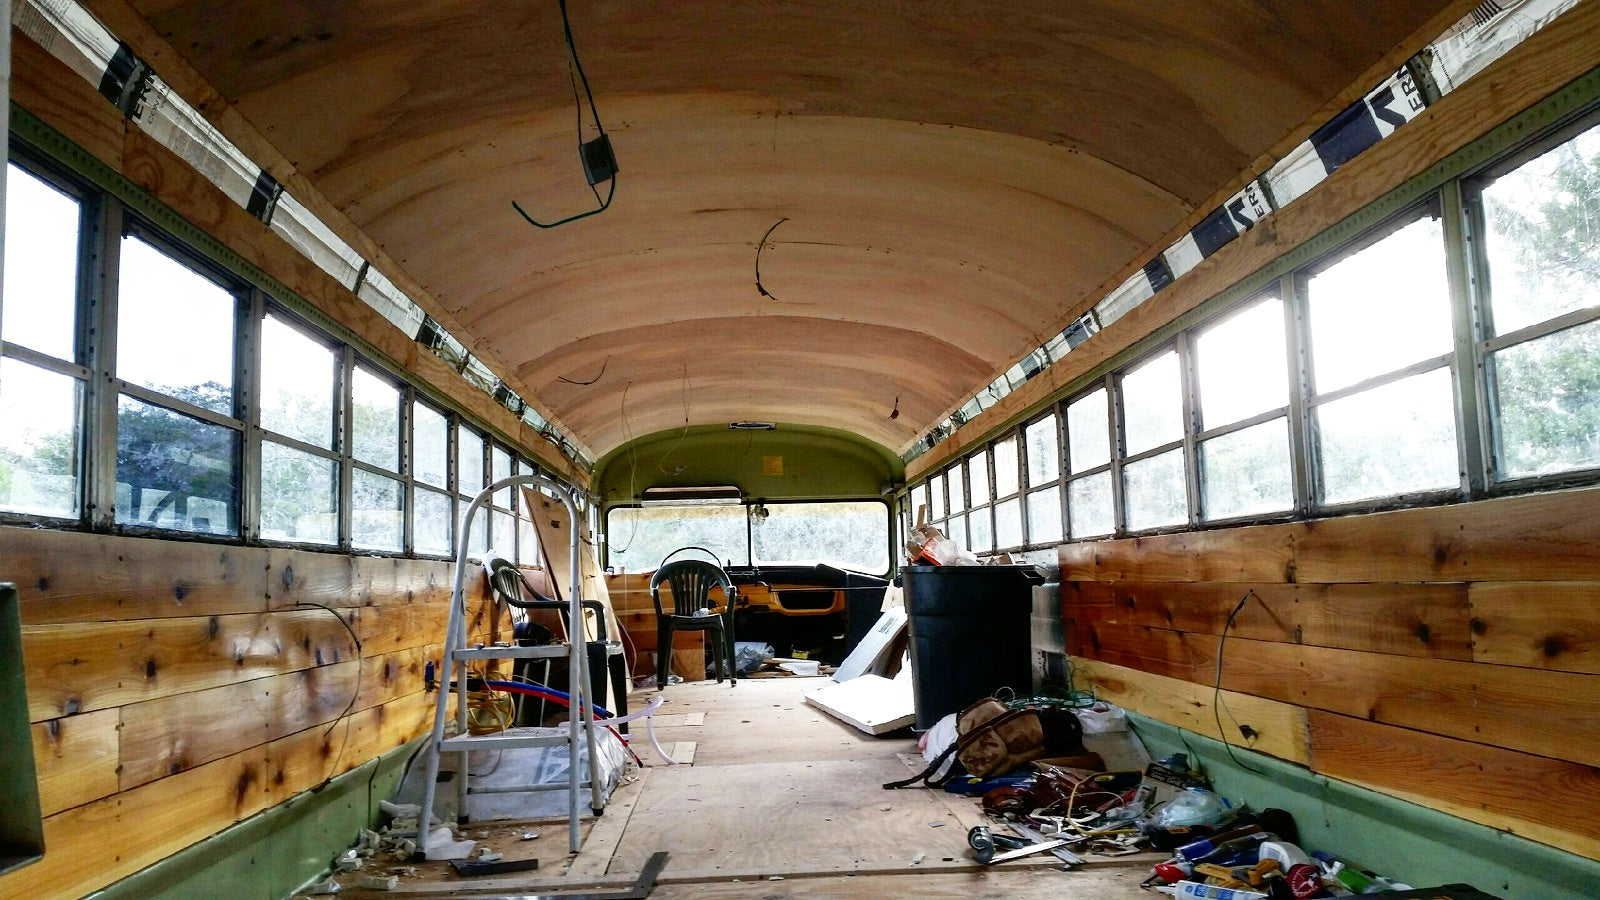 The School Bus Conversion is a big project